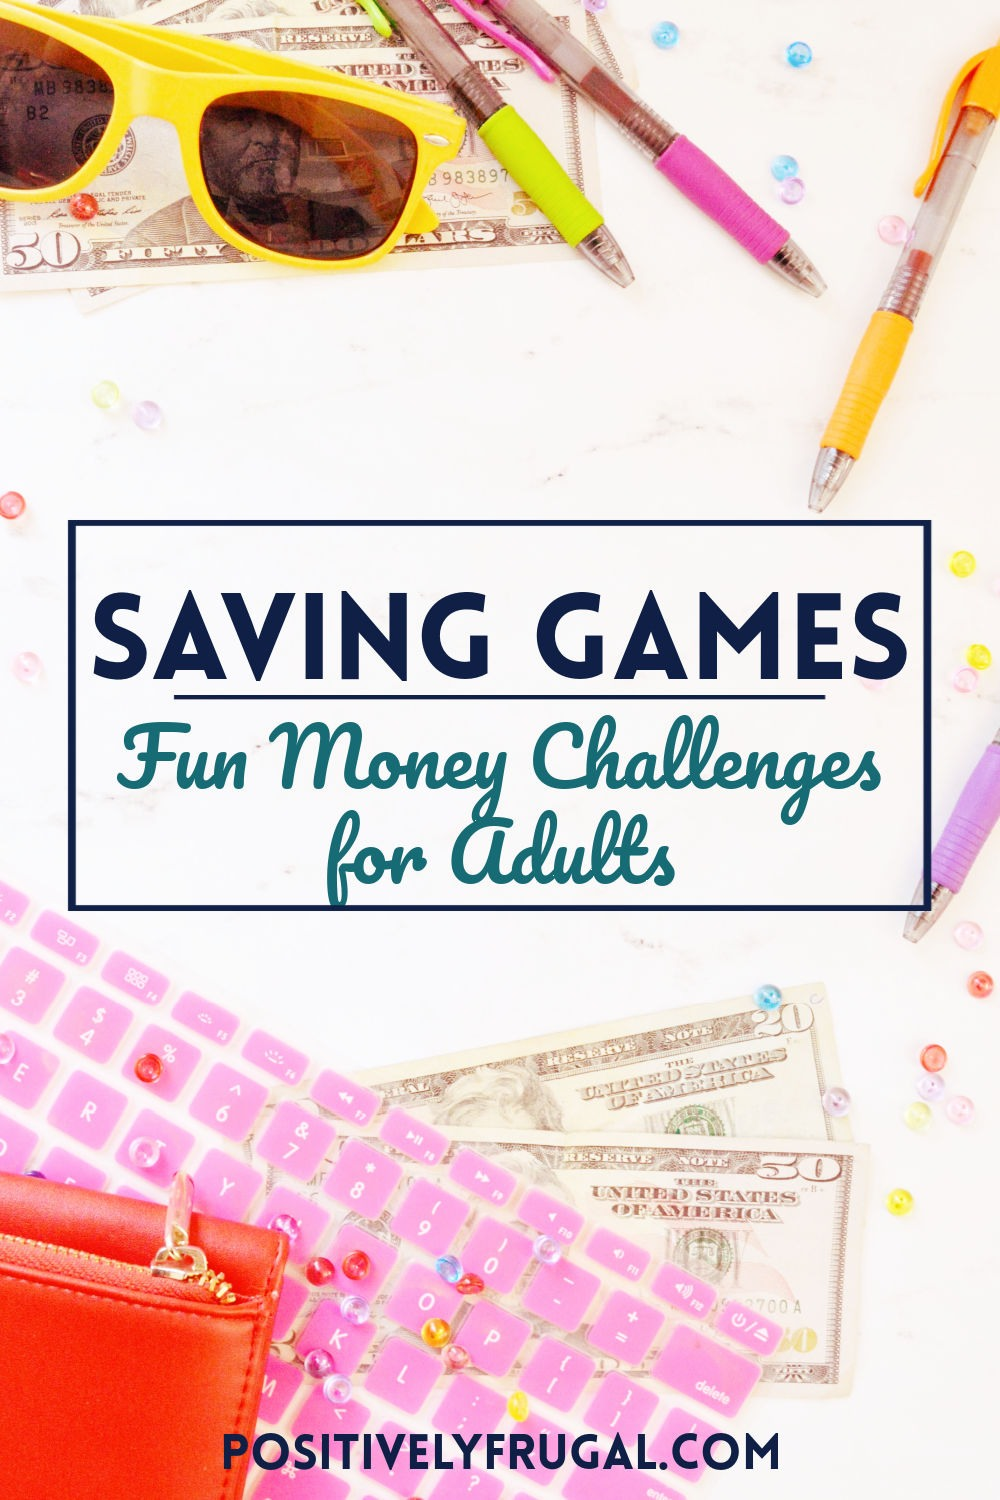 Saving Games for Adults by PositivelyFrugal.com